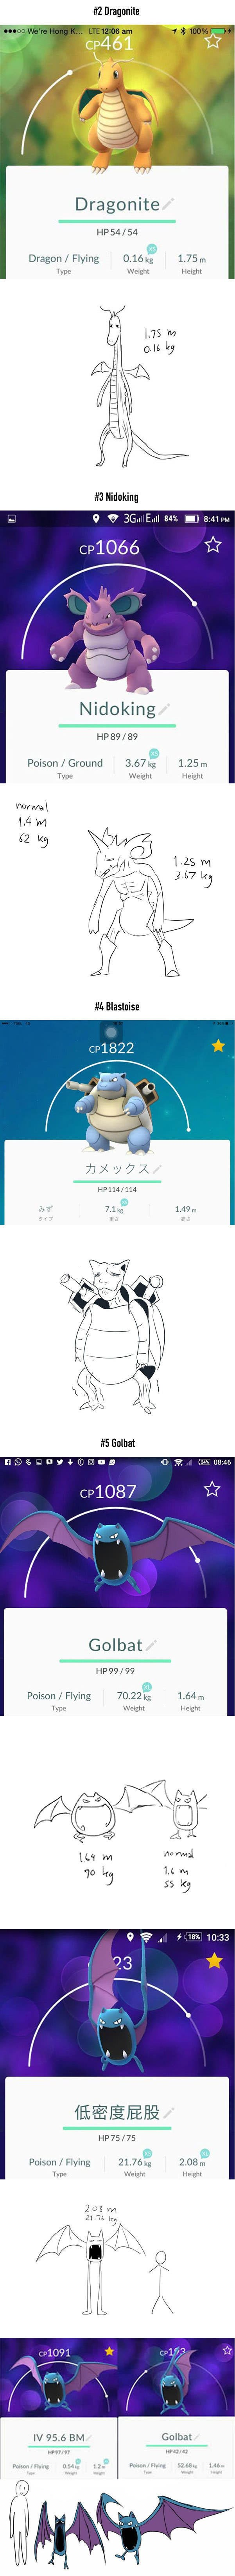 Pokemon Height Weight (2)